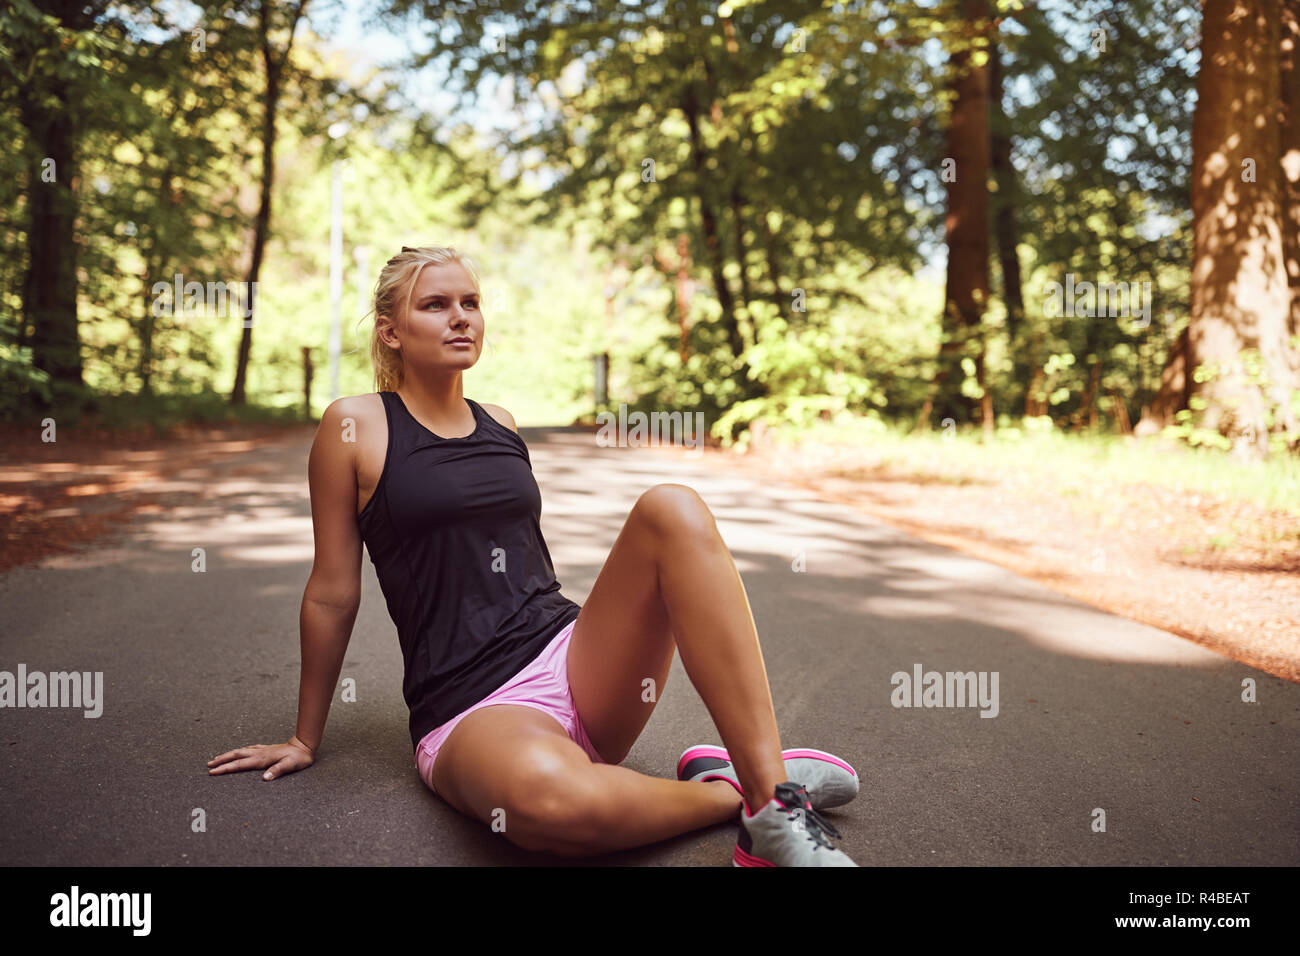 Fit young blonde woman in sportswear sitting on a path in a forest taking a break from her run Stock Photo